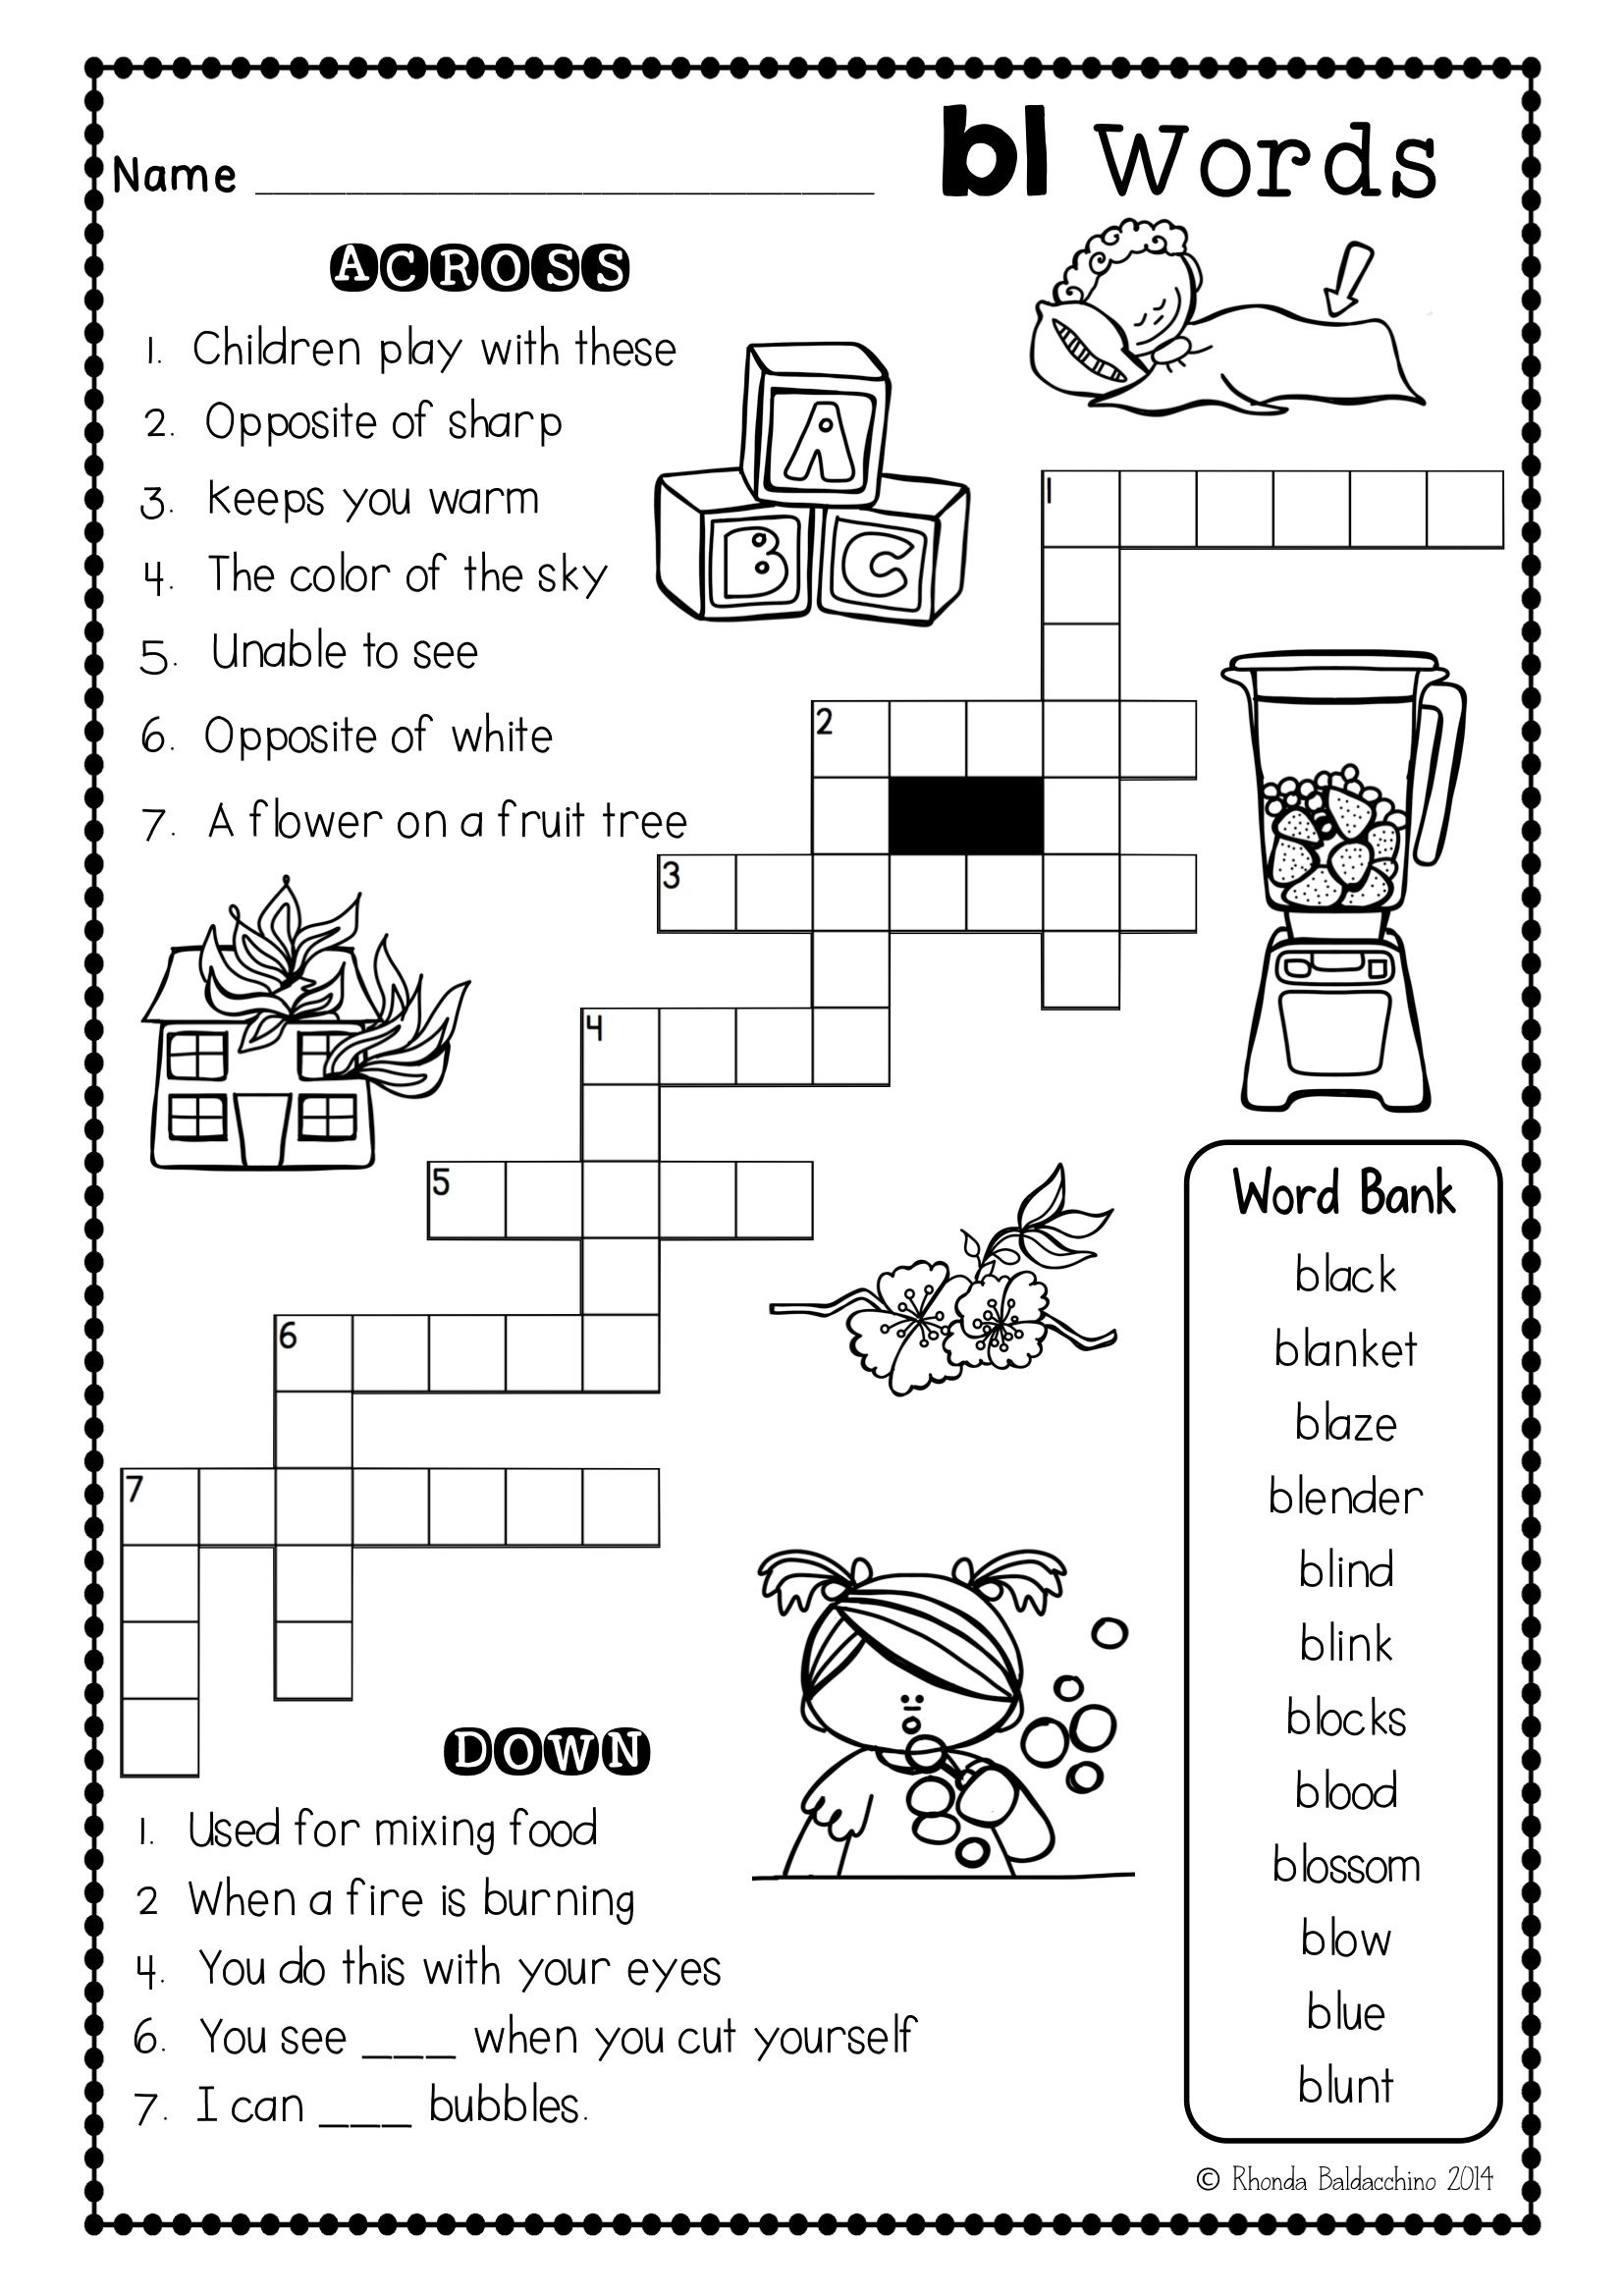 hight resolution of Fun Crossword Puzzles for blends   Consonant blends worksheets